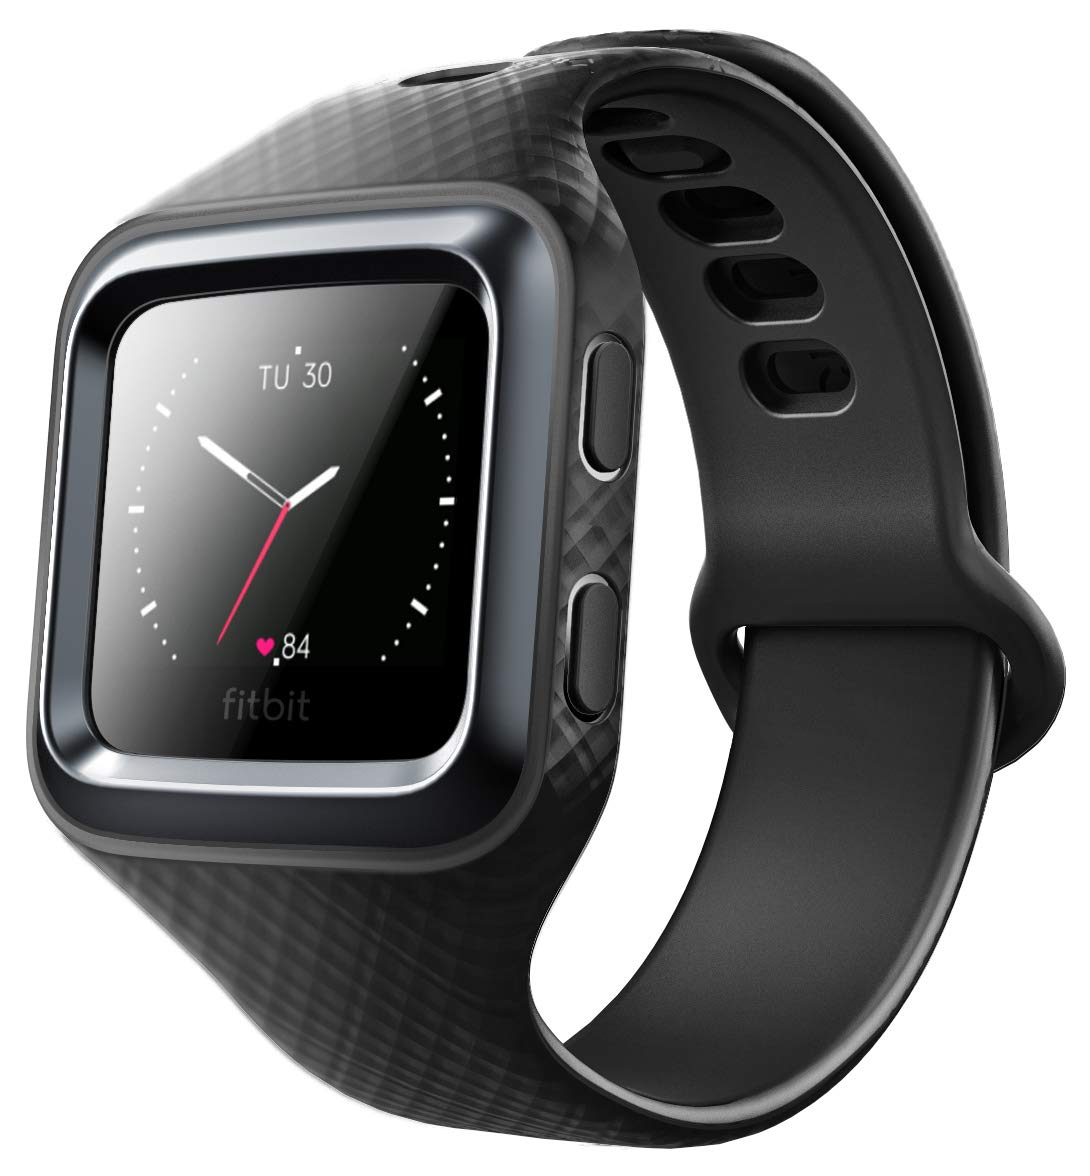 Clayco Fitbit Blaze Bands, [Hera Series] Shock Resistant Bumper Case with Strap Bands for Fitbit Blaze Replacement Smart Fitness Watch Wristband (Black) by Clayco